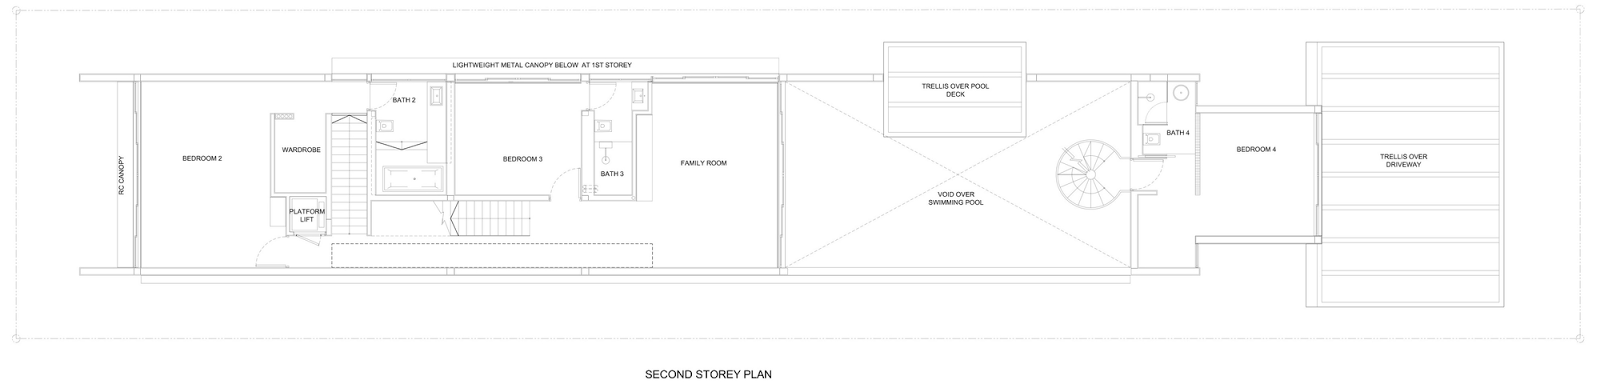 groundfloor floor plan blueprint of Slim Luxurious Dream Home Envisioned by Hyla Architects in Singapore homesthetics (1)